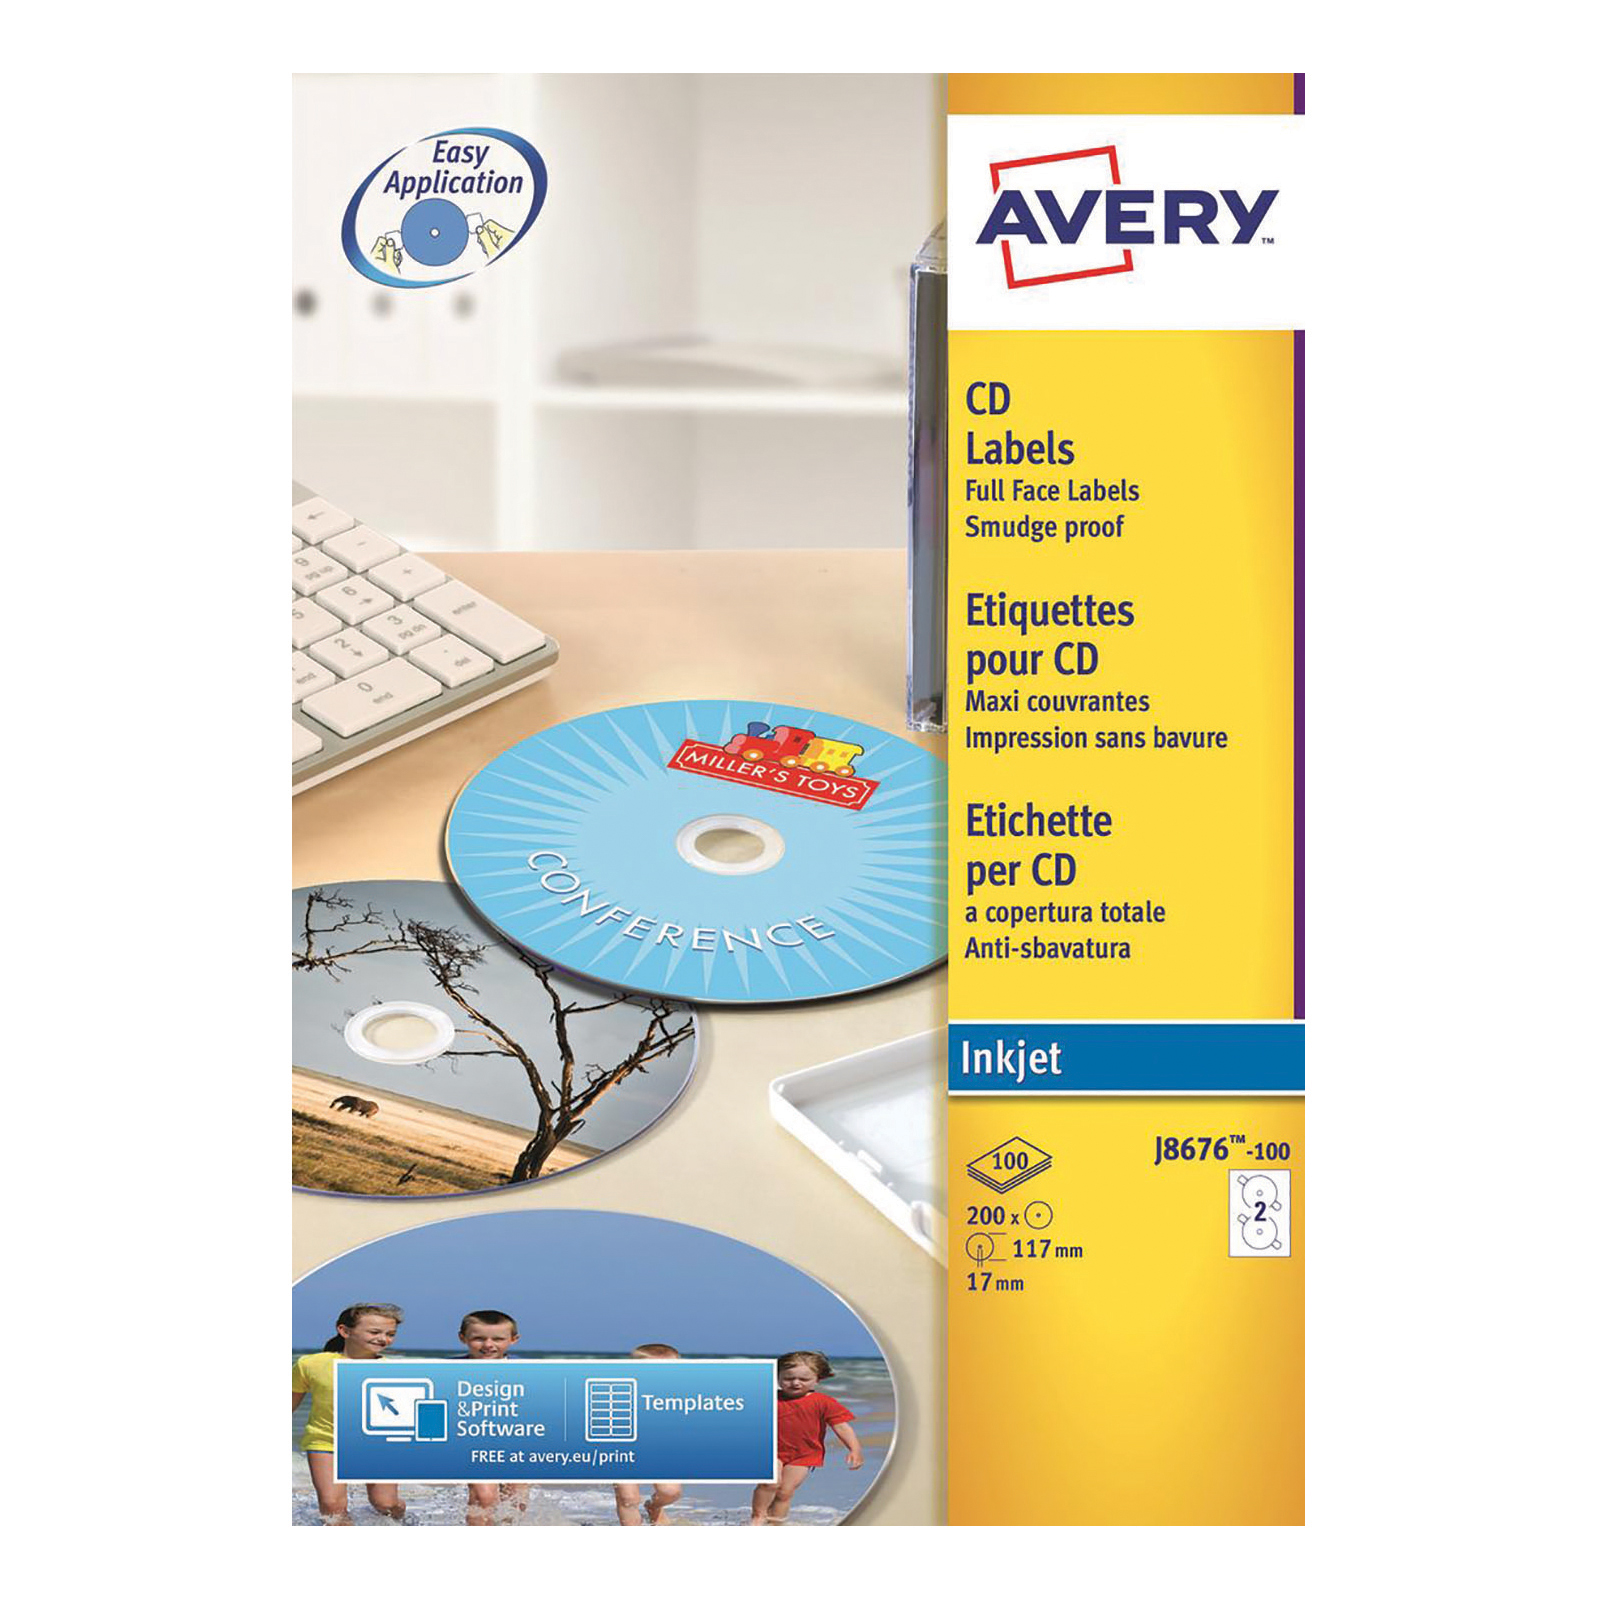 Avery CD/DVD Labels Inkjet 2 per Sheet Dia.117mm Easy Application White Ref J8676-100 200 Labels